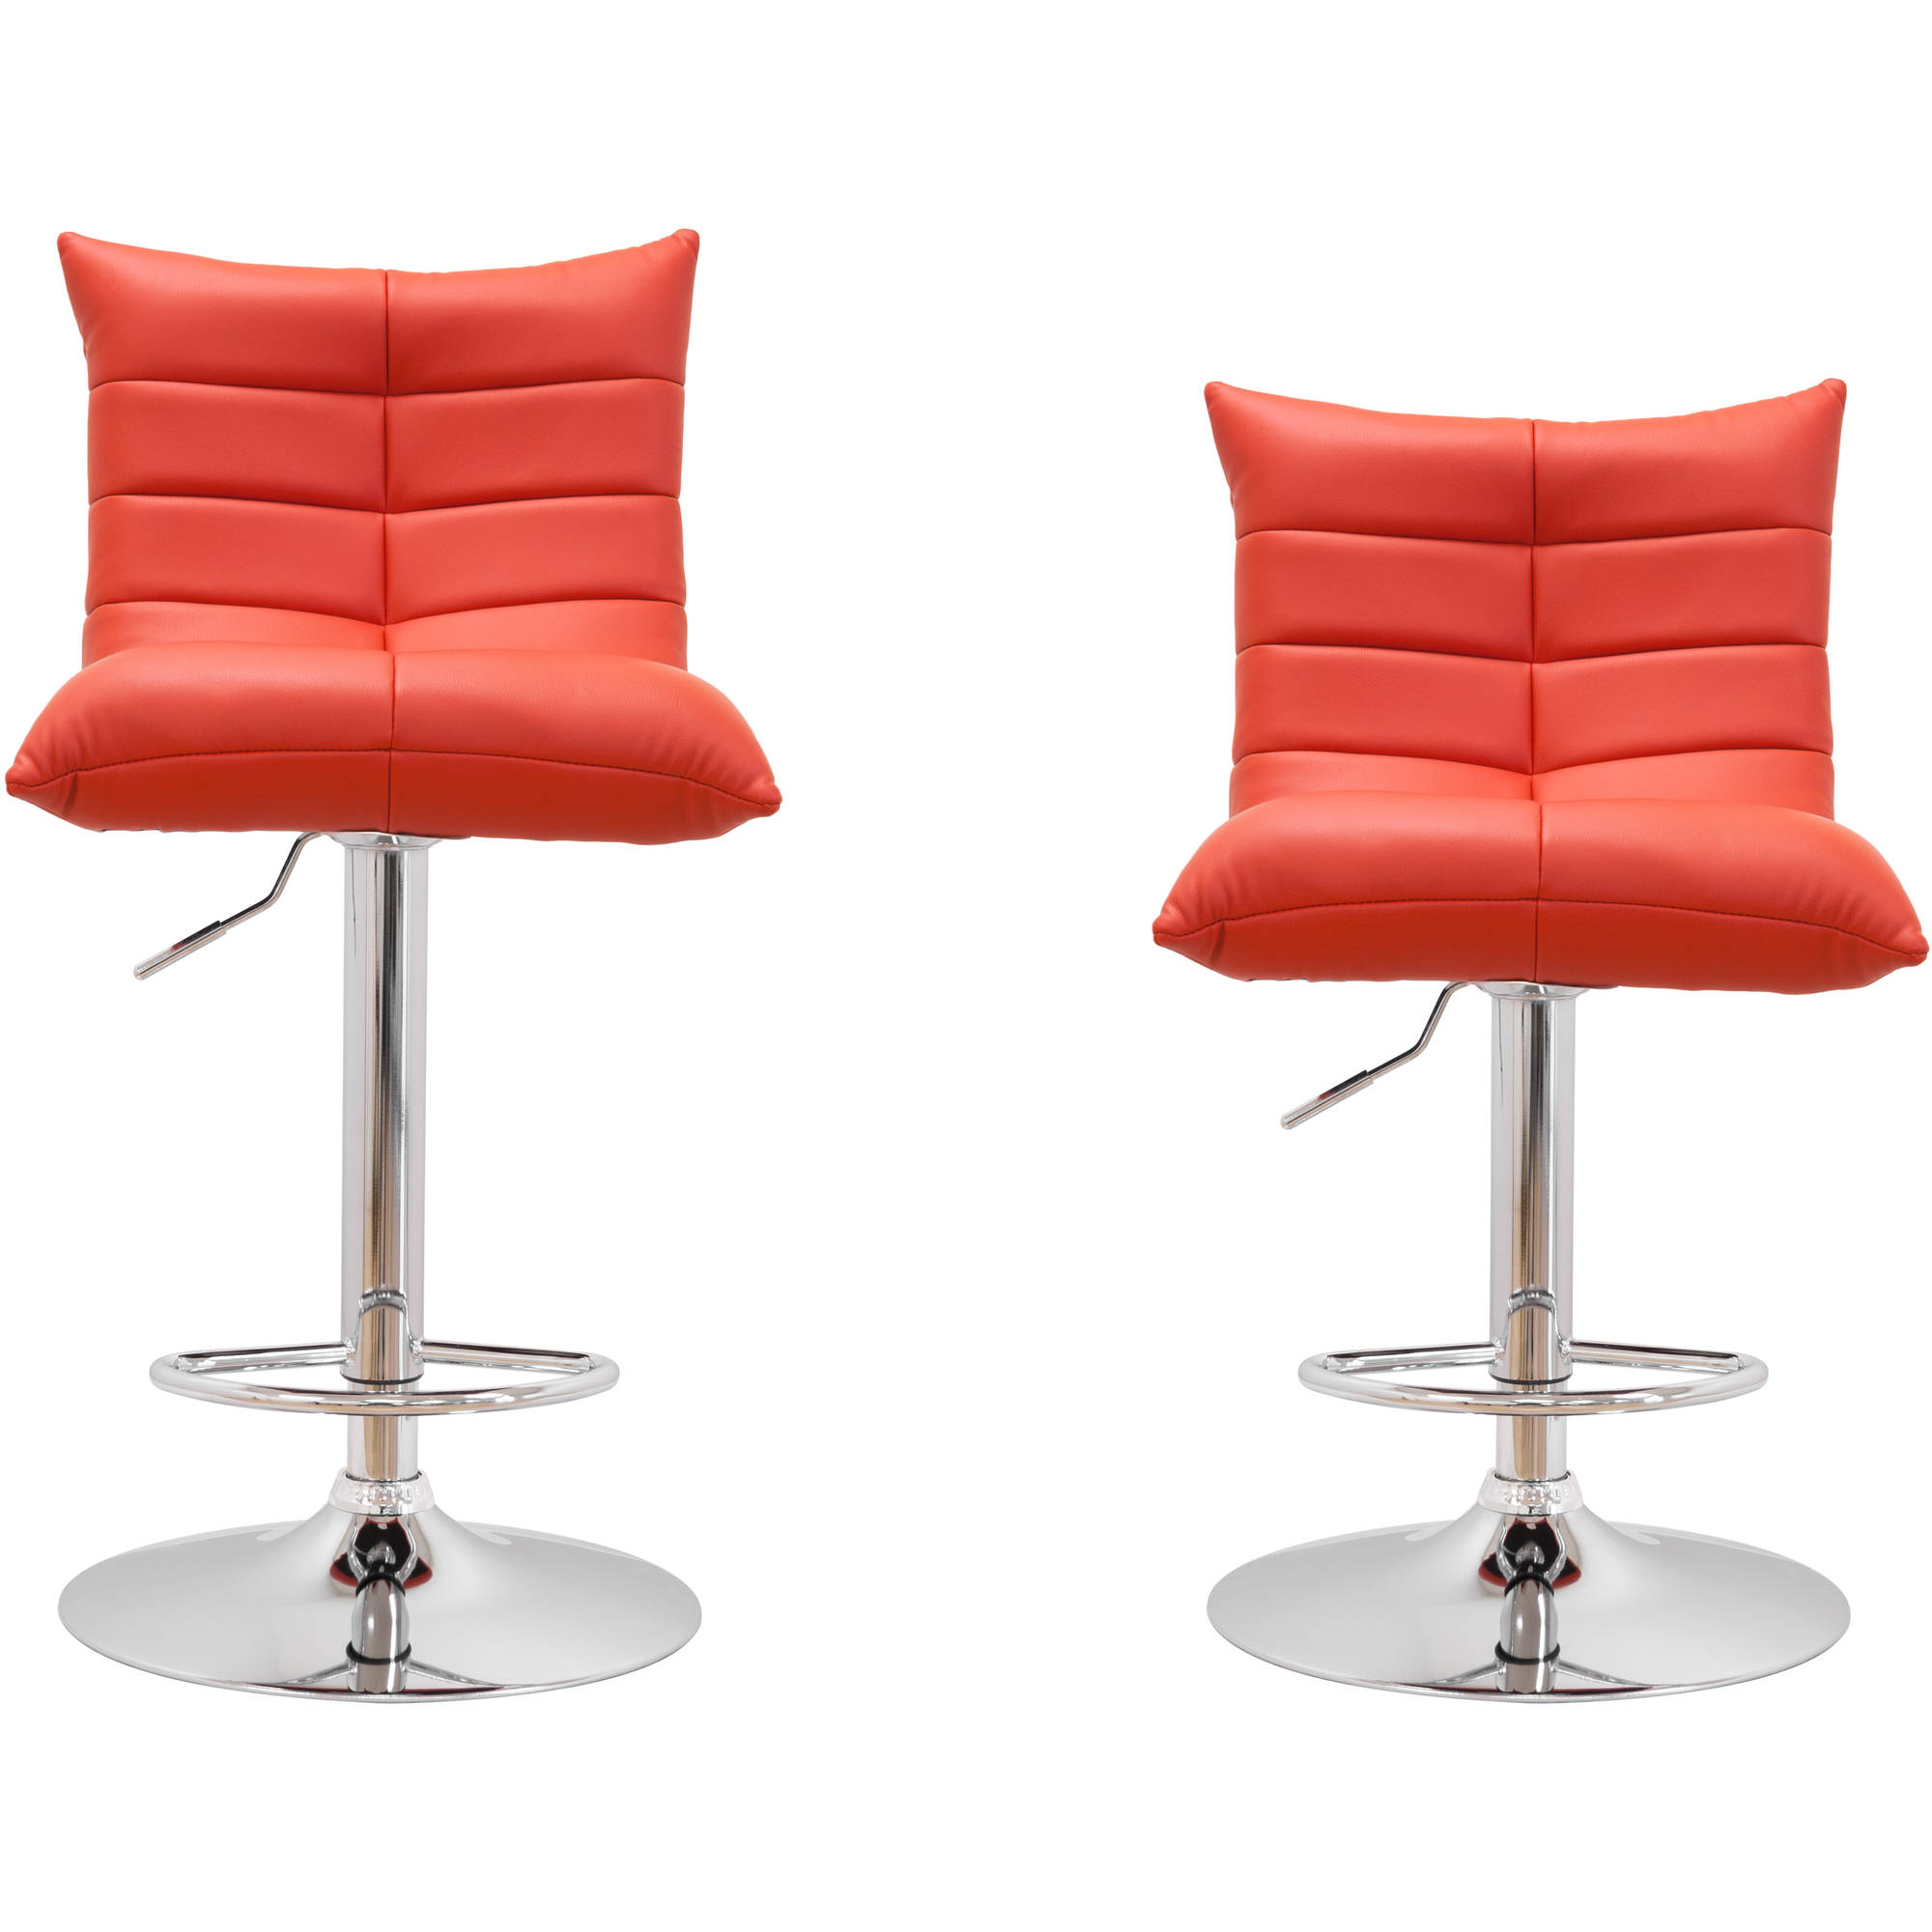 Prime Best Master Furniture Tufted Vinyl Adjustable Height Swivel Bar Stool Multiple Colors Available Bralicious Painted Fabric Chair Ideas Braliciousco